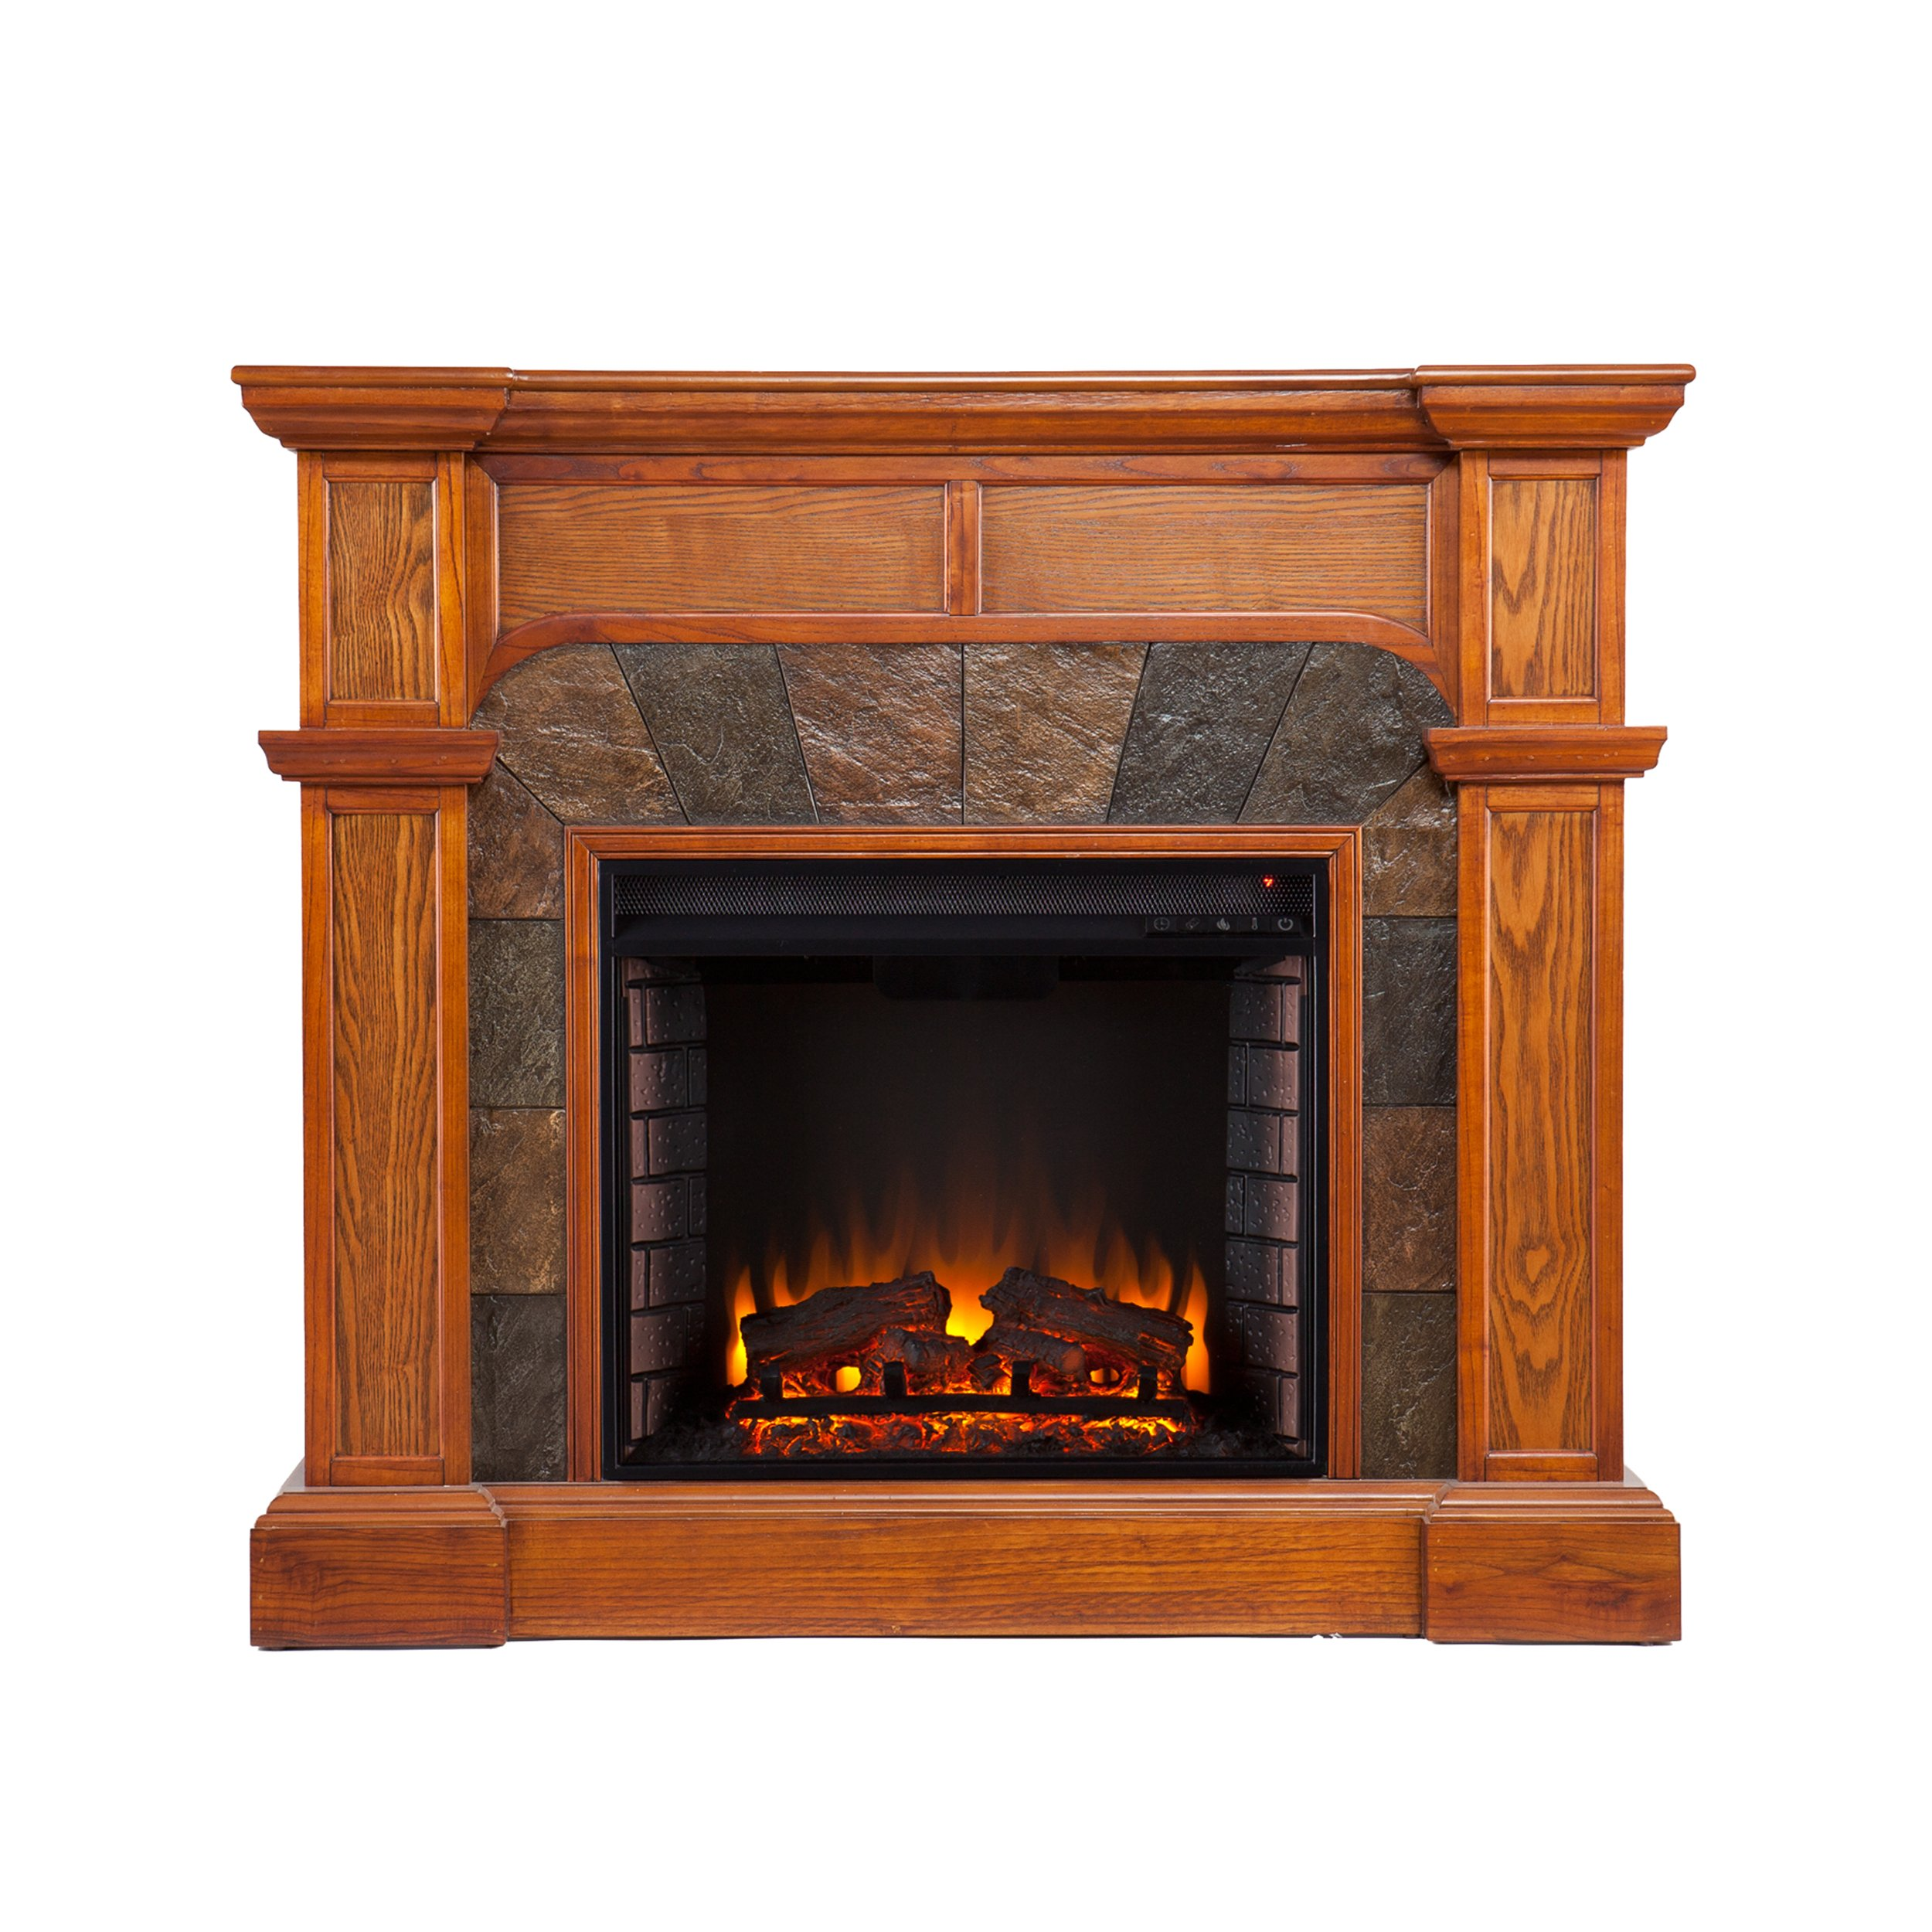 stunning small new design home fireplace electric images amazon fresh and ideas insert